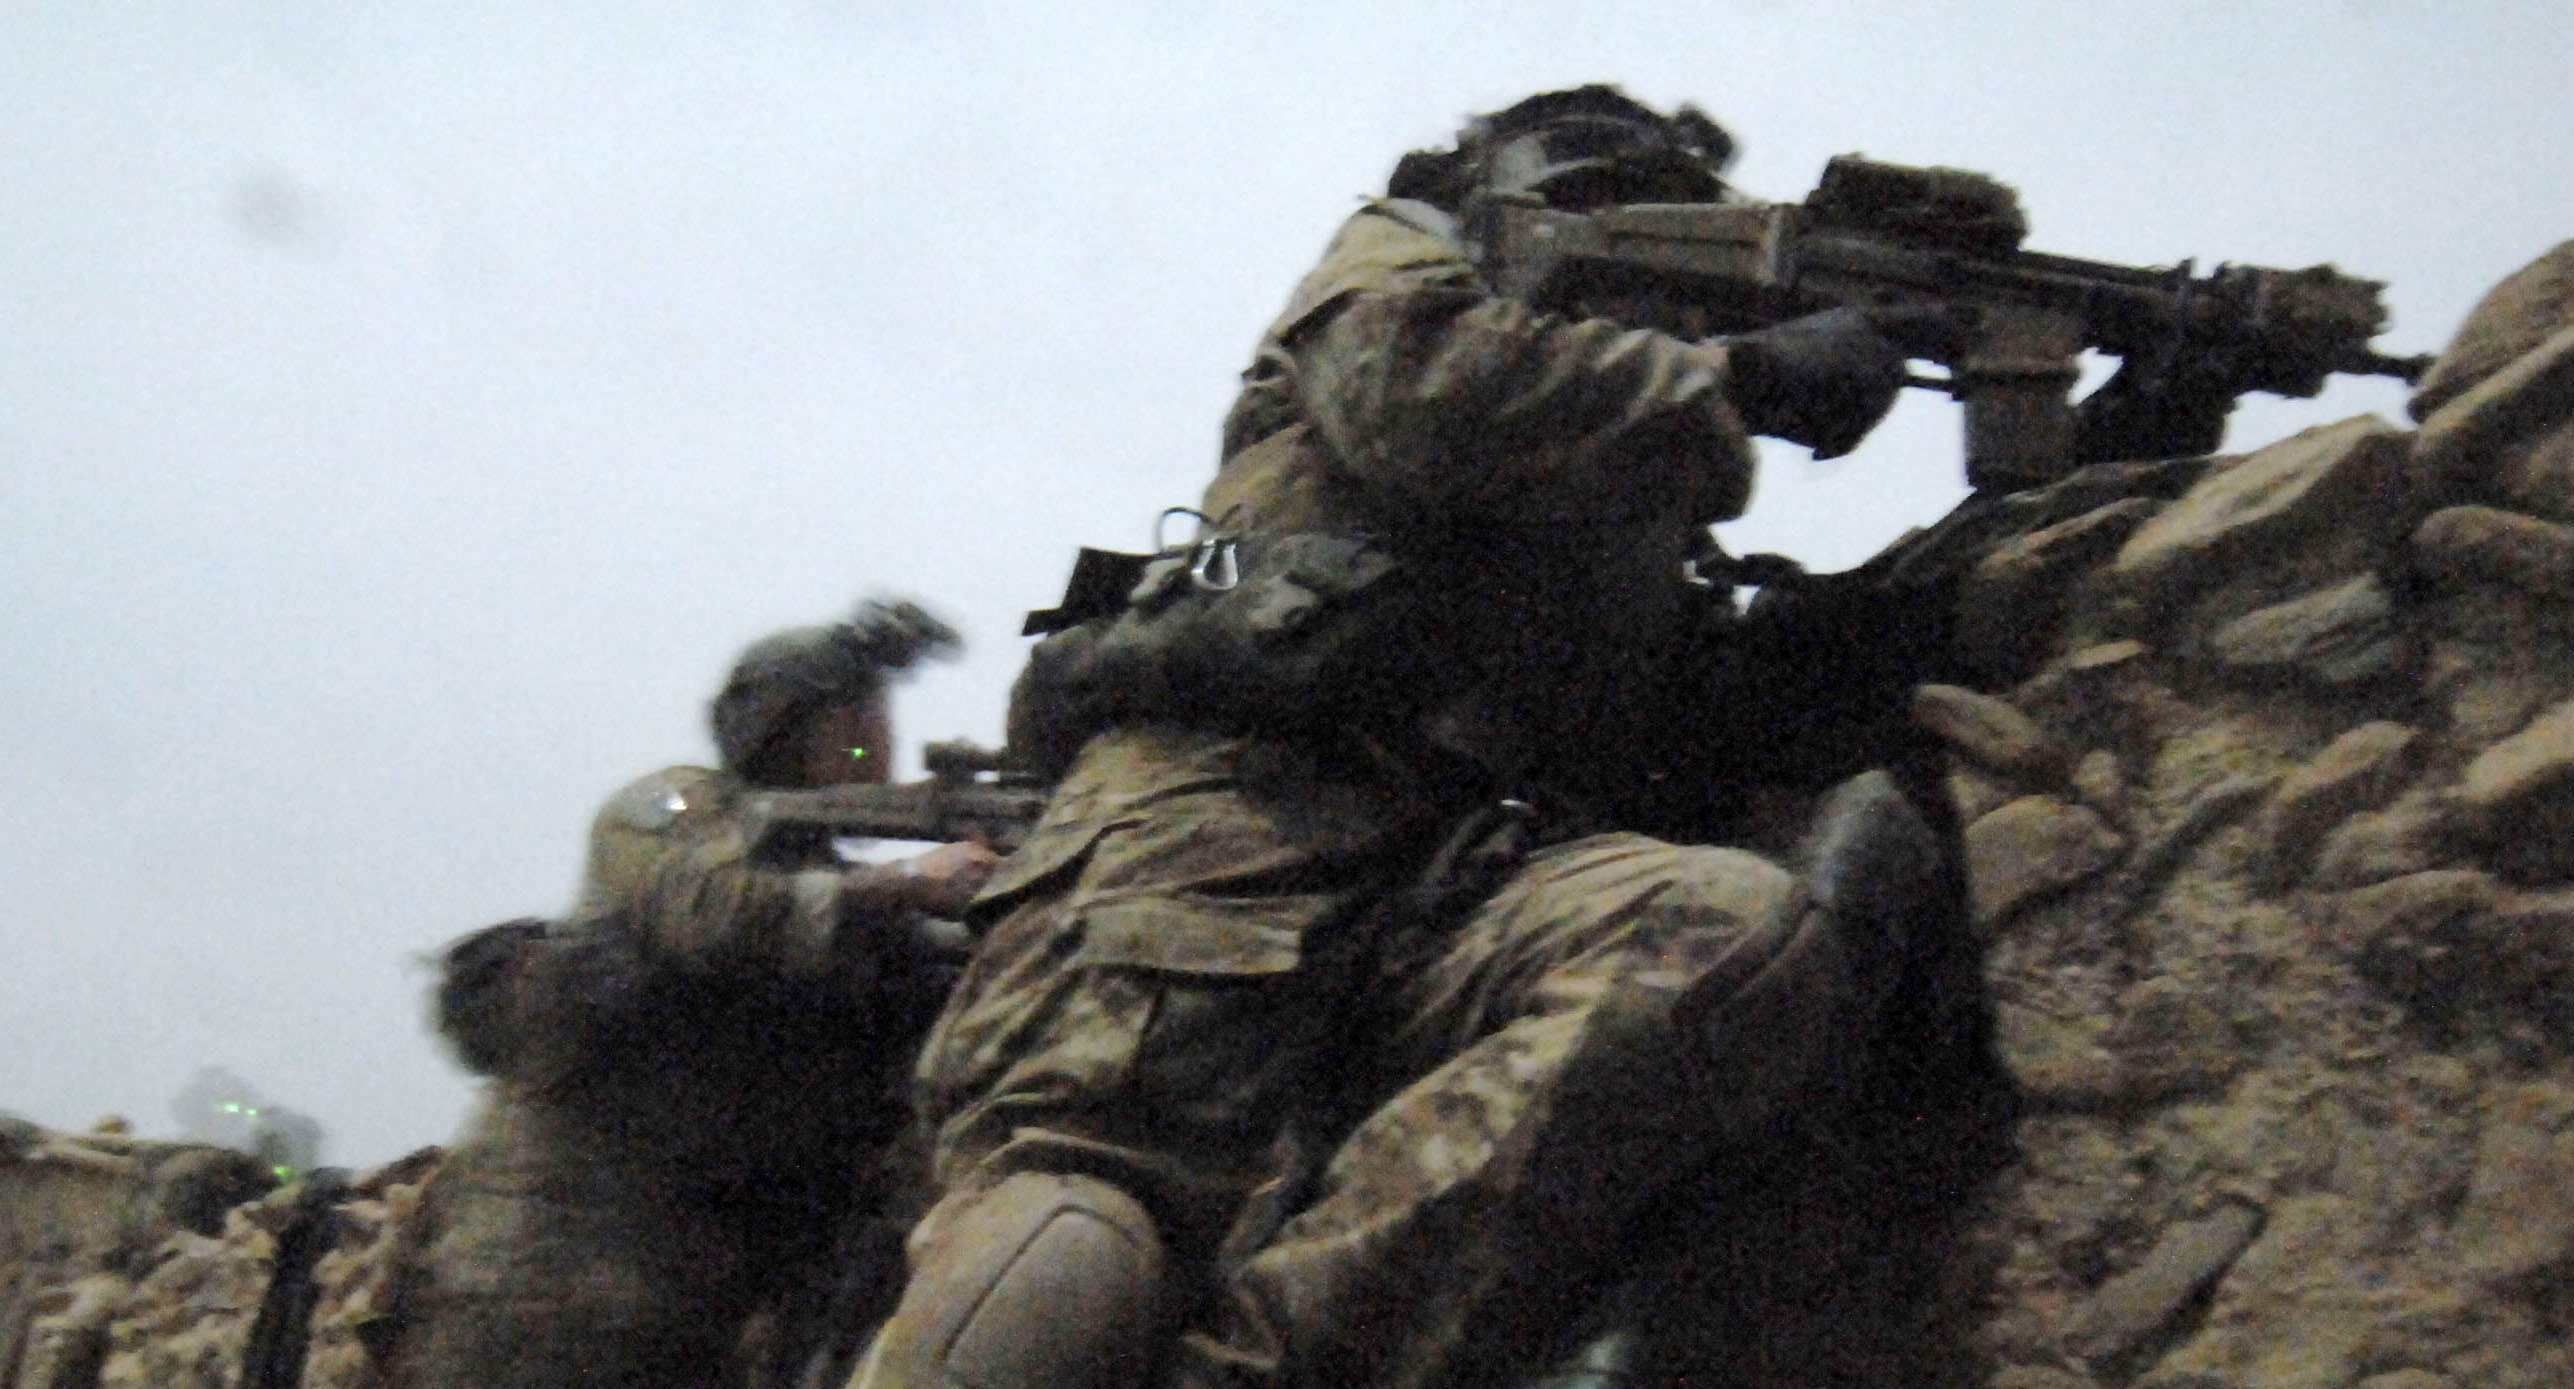 US Army Ranger With SCAR-H | Photo